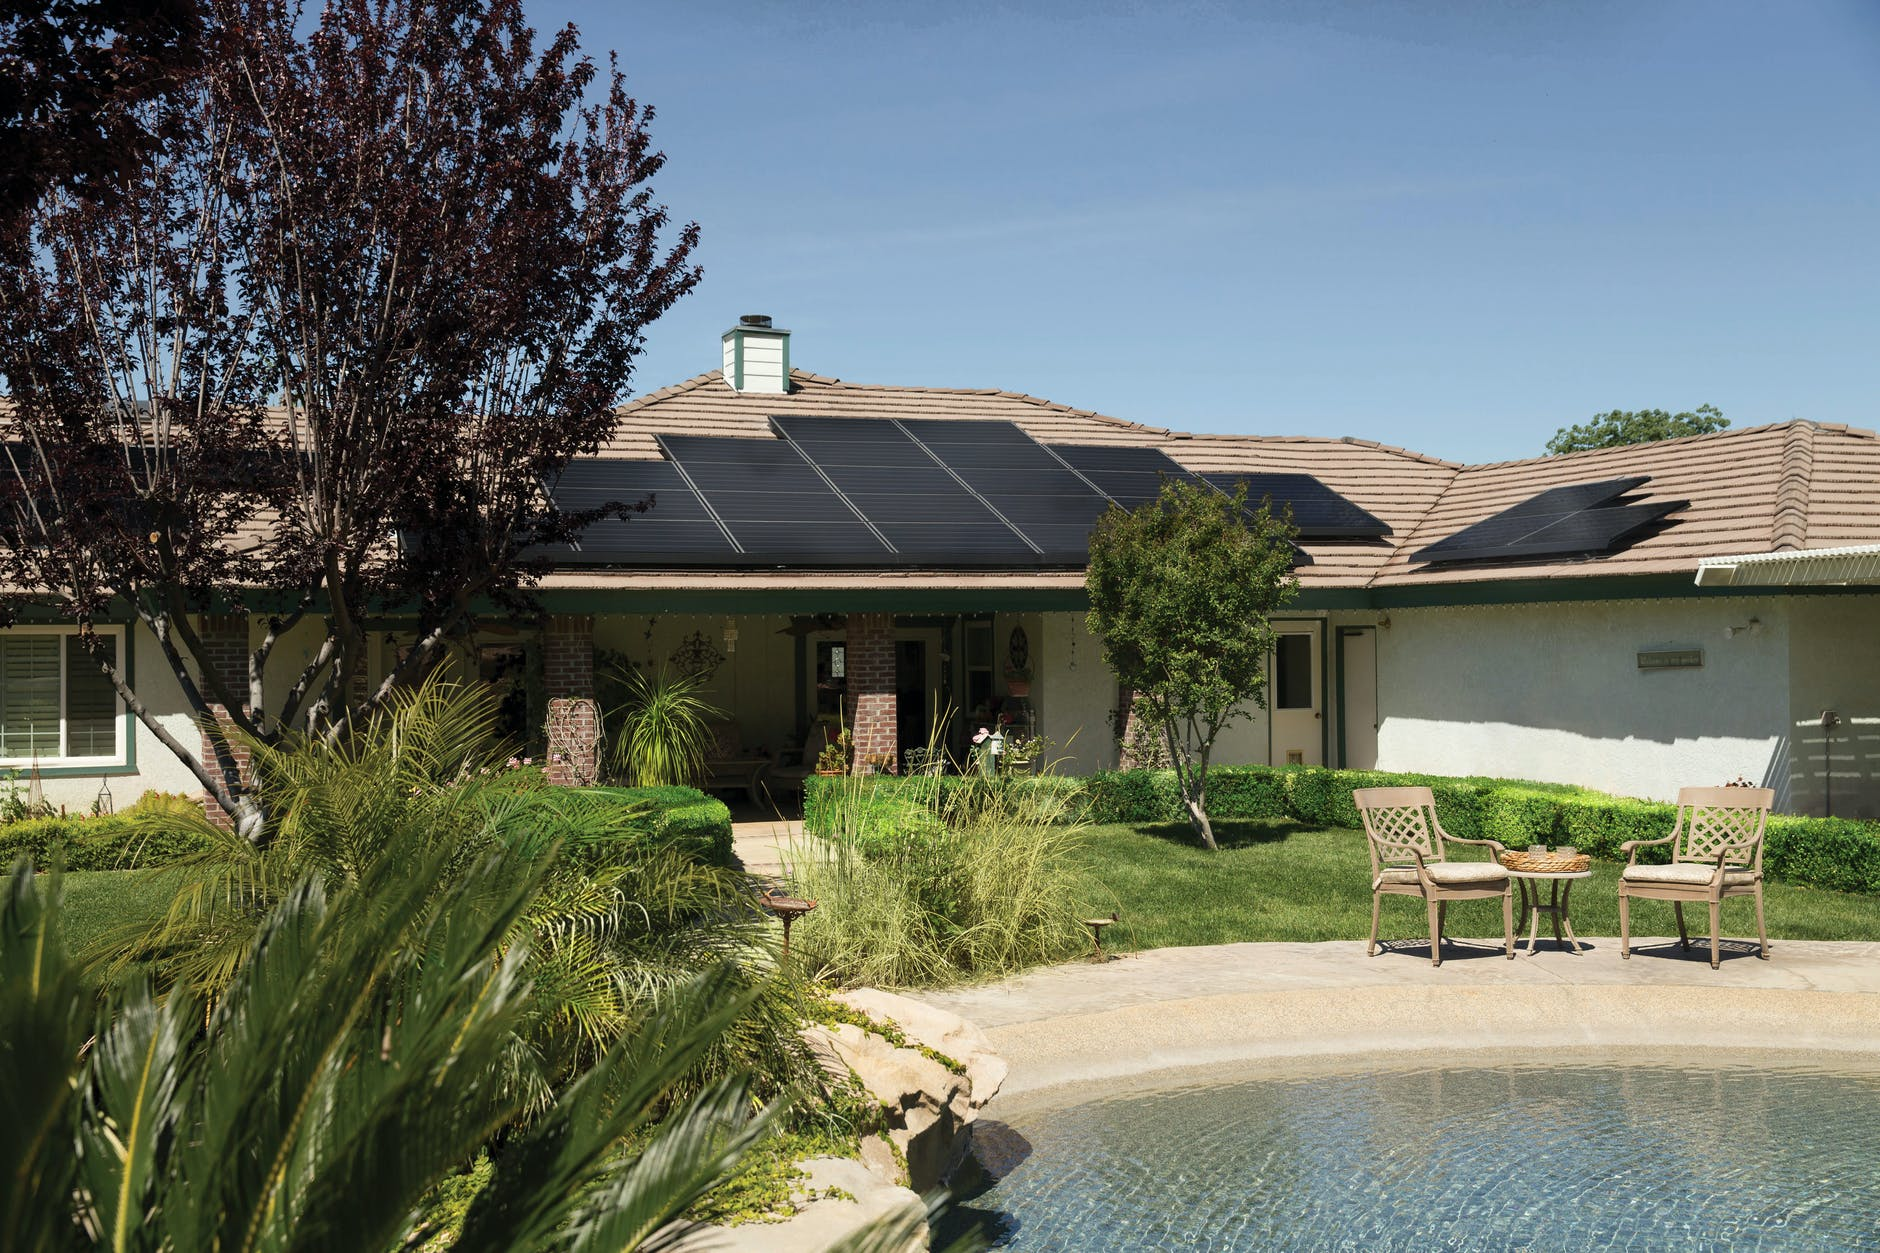 Do Solar Panels Hurt the Resale Value of Your Home?